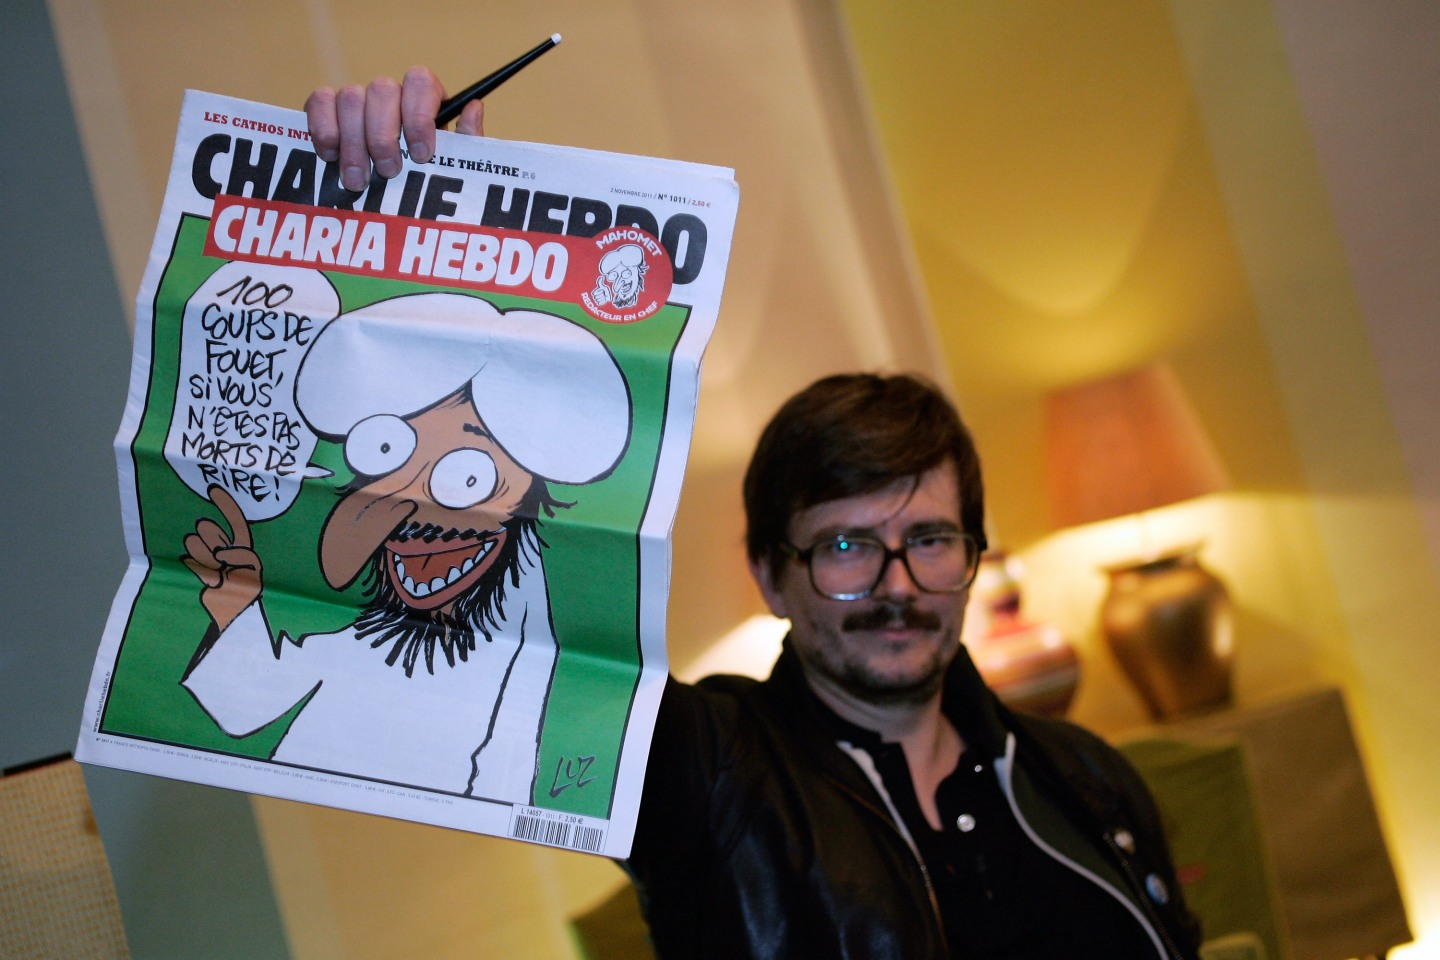 Charlie Hebdo First Team Meeting After Terrorist Attack